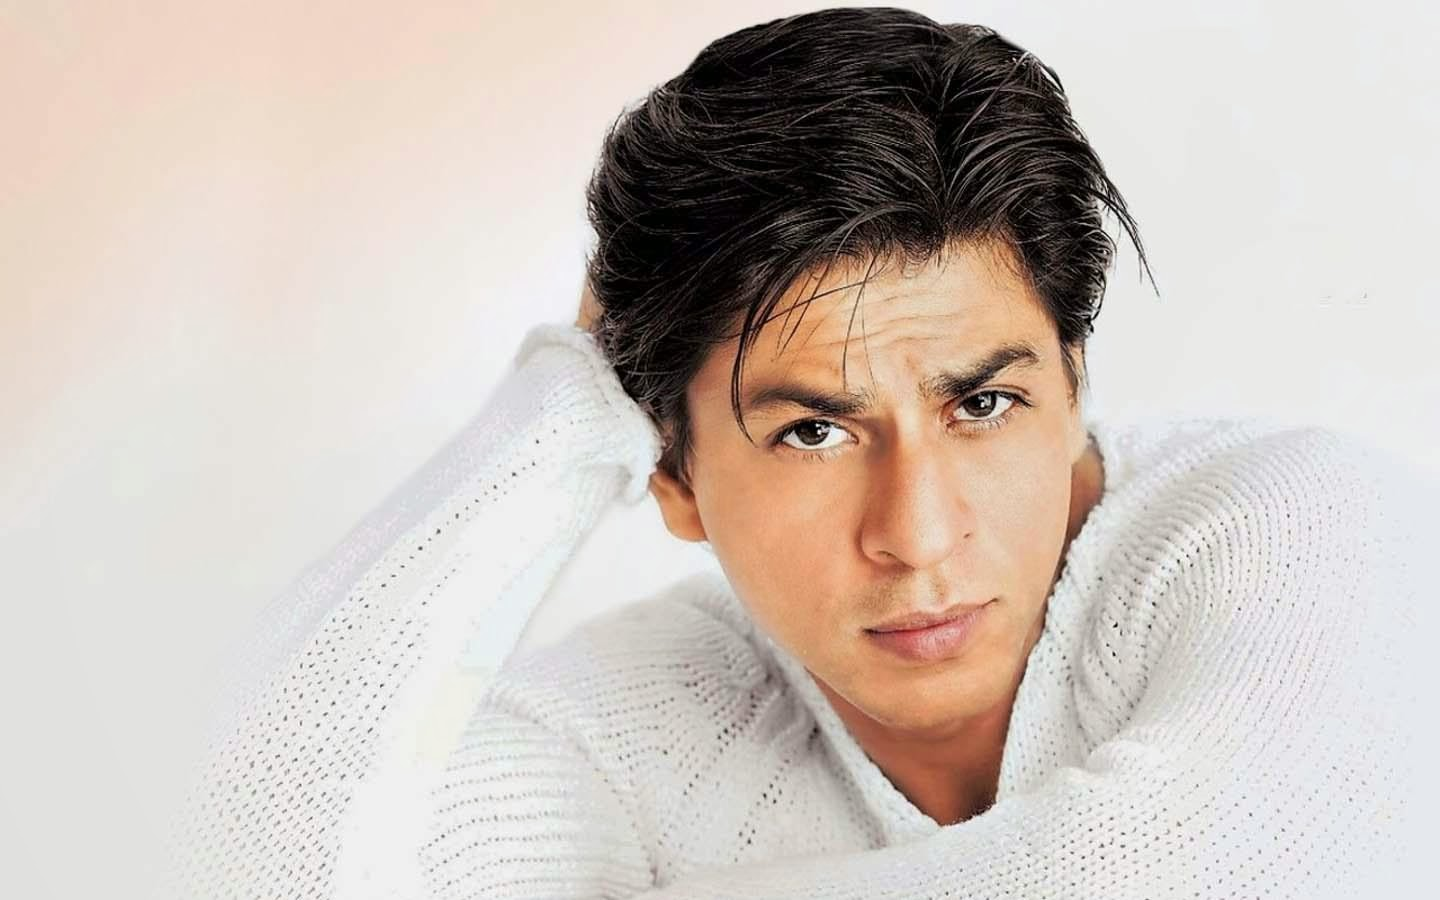 Wallpaper Shahrukh Khan Free Download Your Title